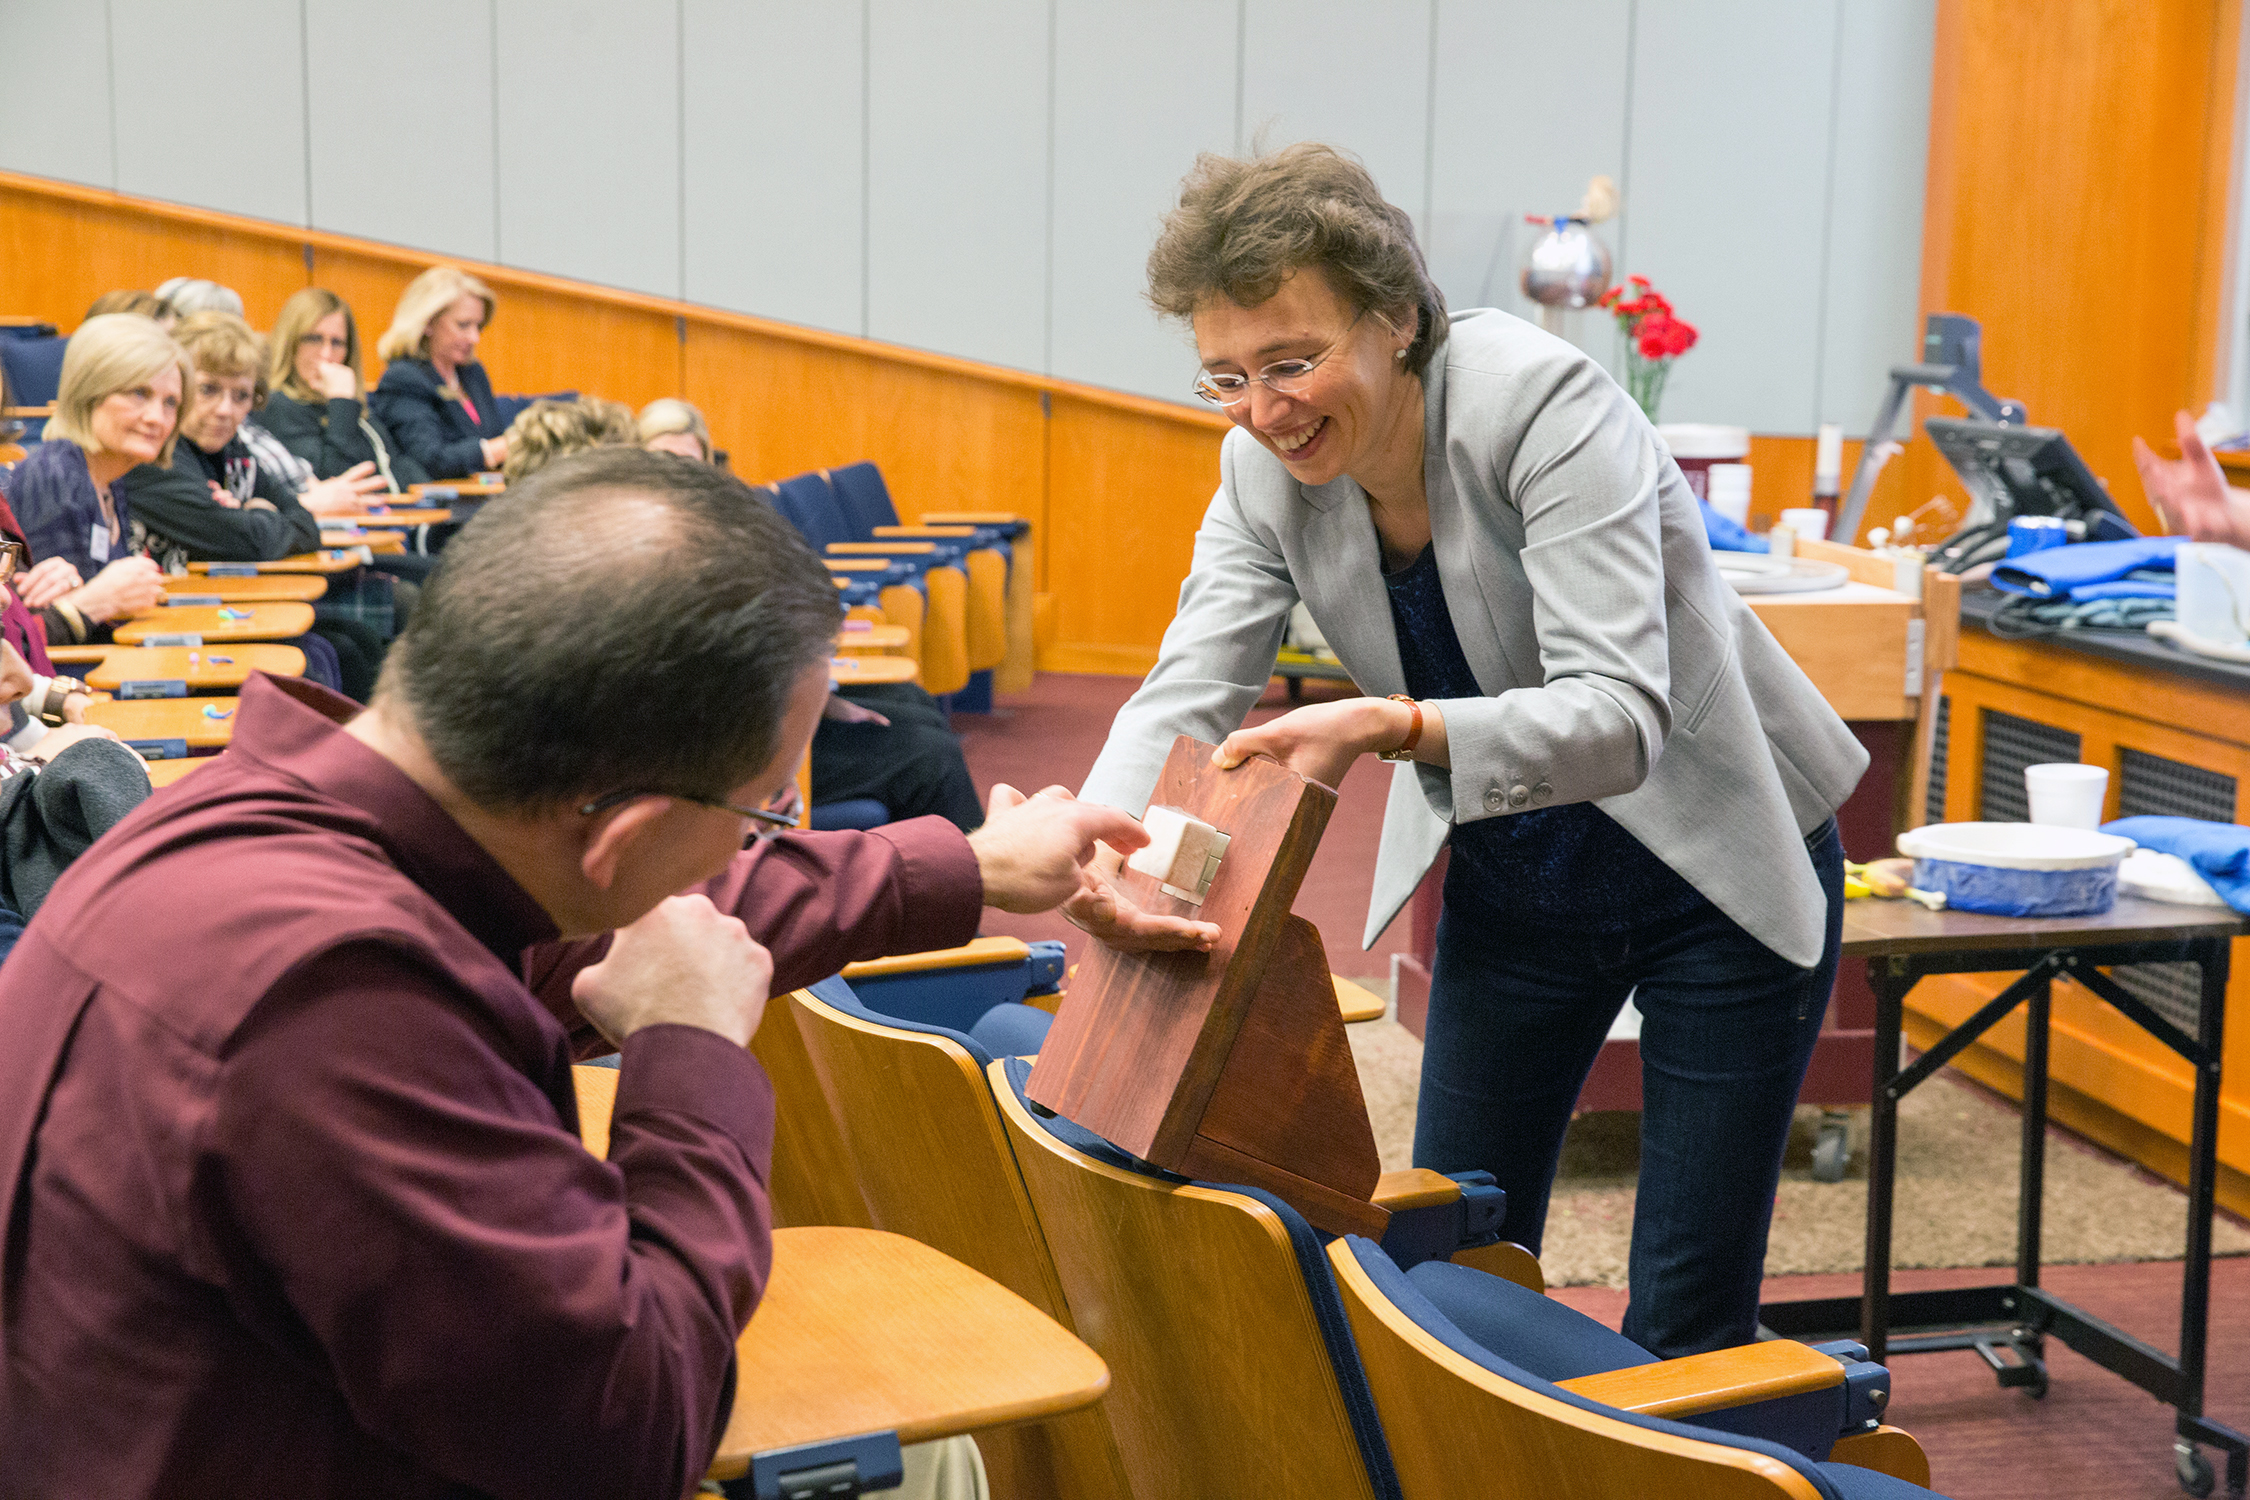 Dr. Tatiana Erukhimova enlists crowd participation in a Physics Show experiment